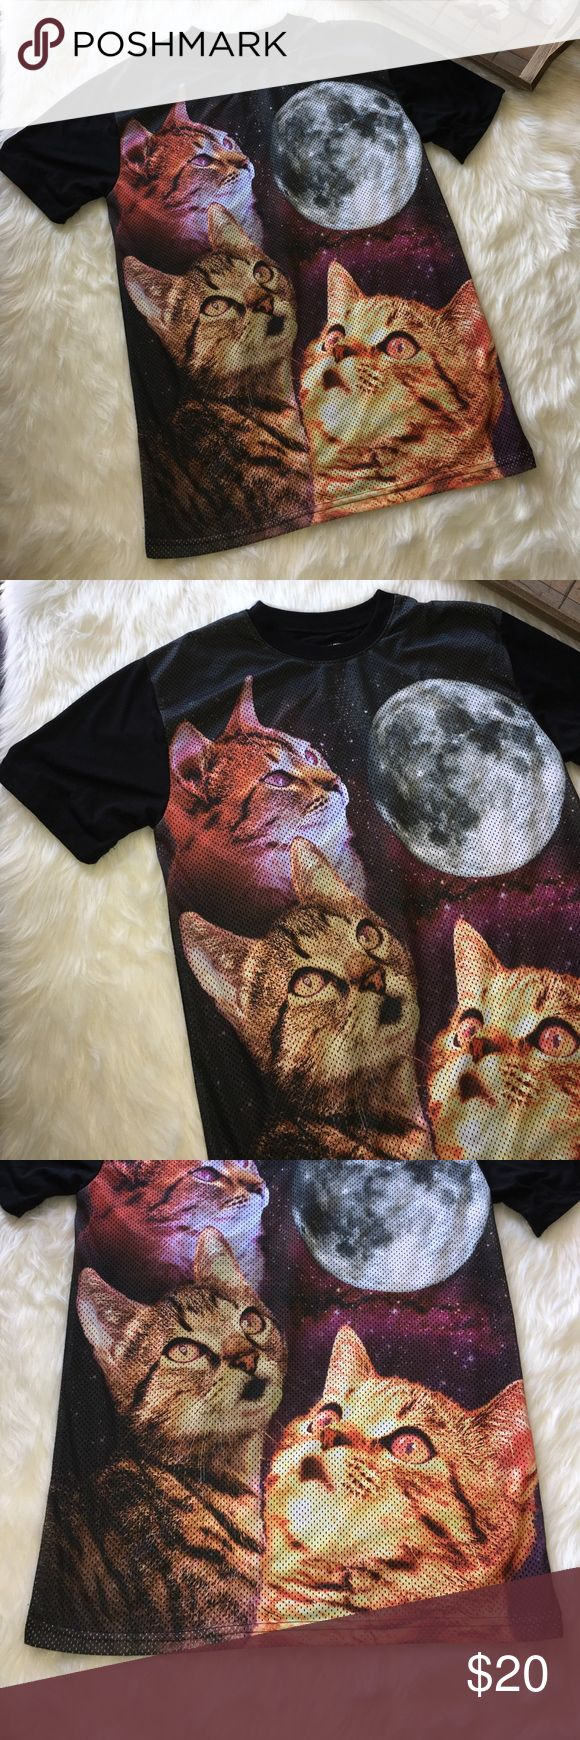 Chemistry Cats Gazing at the Moon Black Jersey Top Super chic and stylish cats gazing at the moon size small in chemistry black jersey knit blouse top in excellent preowned condition Chemistry Tops Tees - Short Sleeve